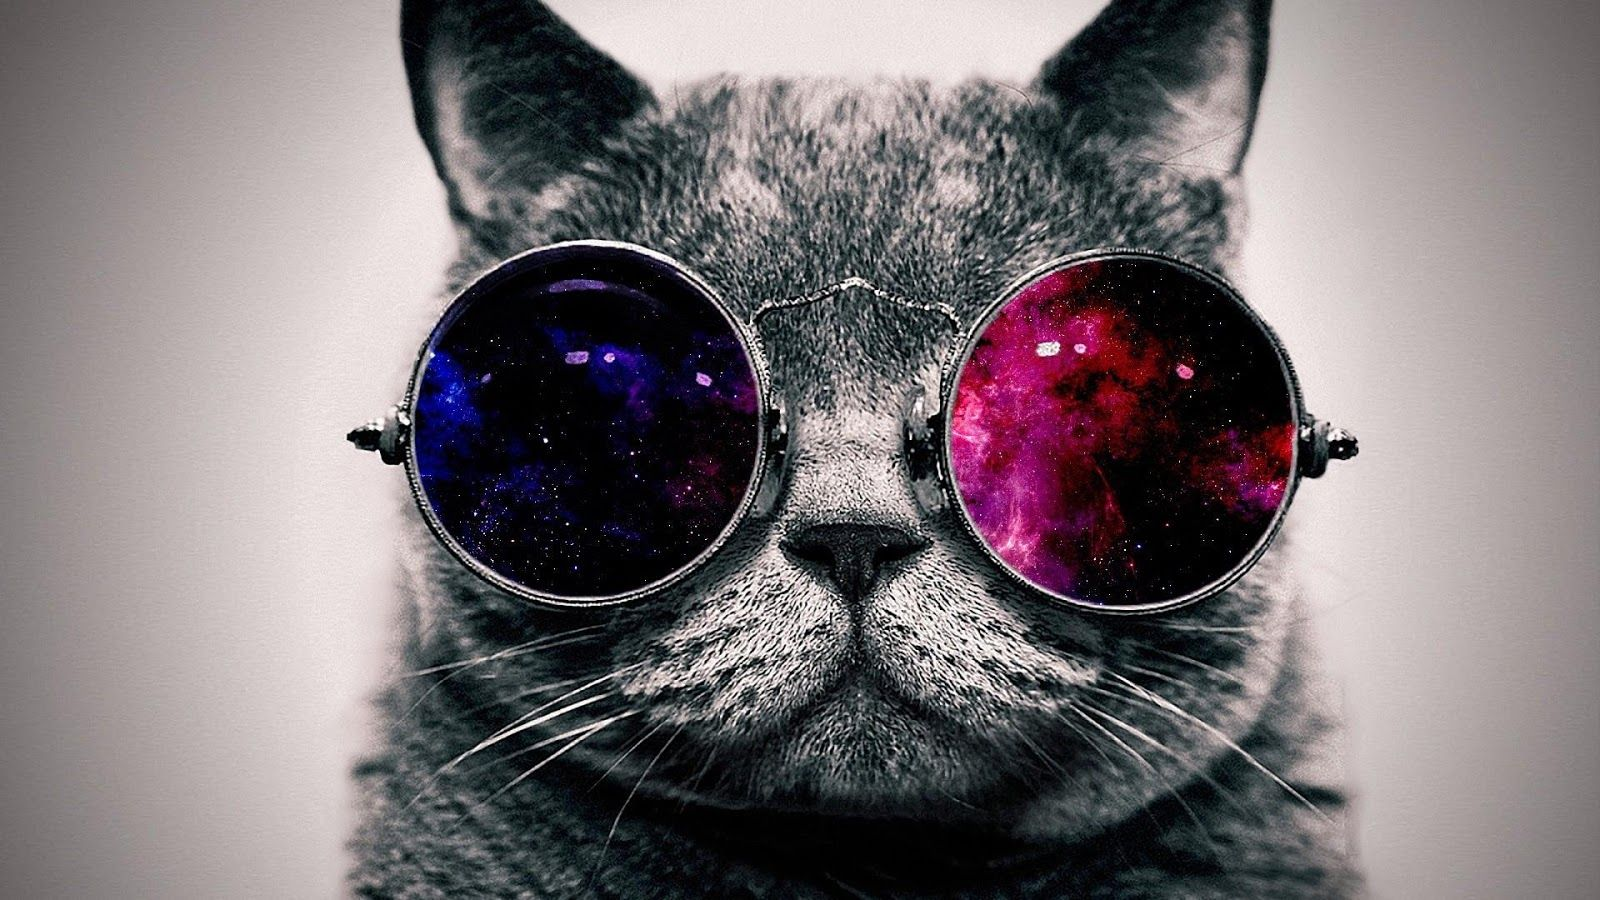 1080p Hd Cat Wallpaper 1920x1080 High Quality Desktop Iphone And Android Background And Wallpaper Animals Wa Cat Sunglasses Animal Paintings Cat Wallpaper